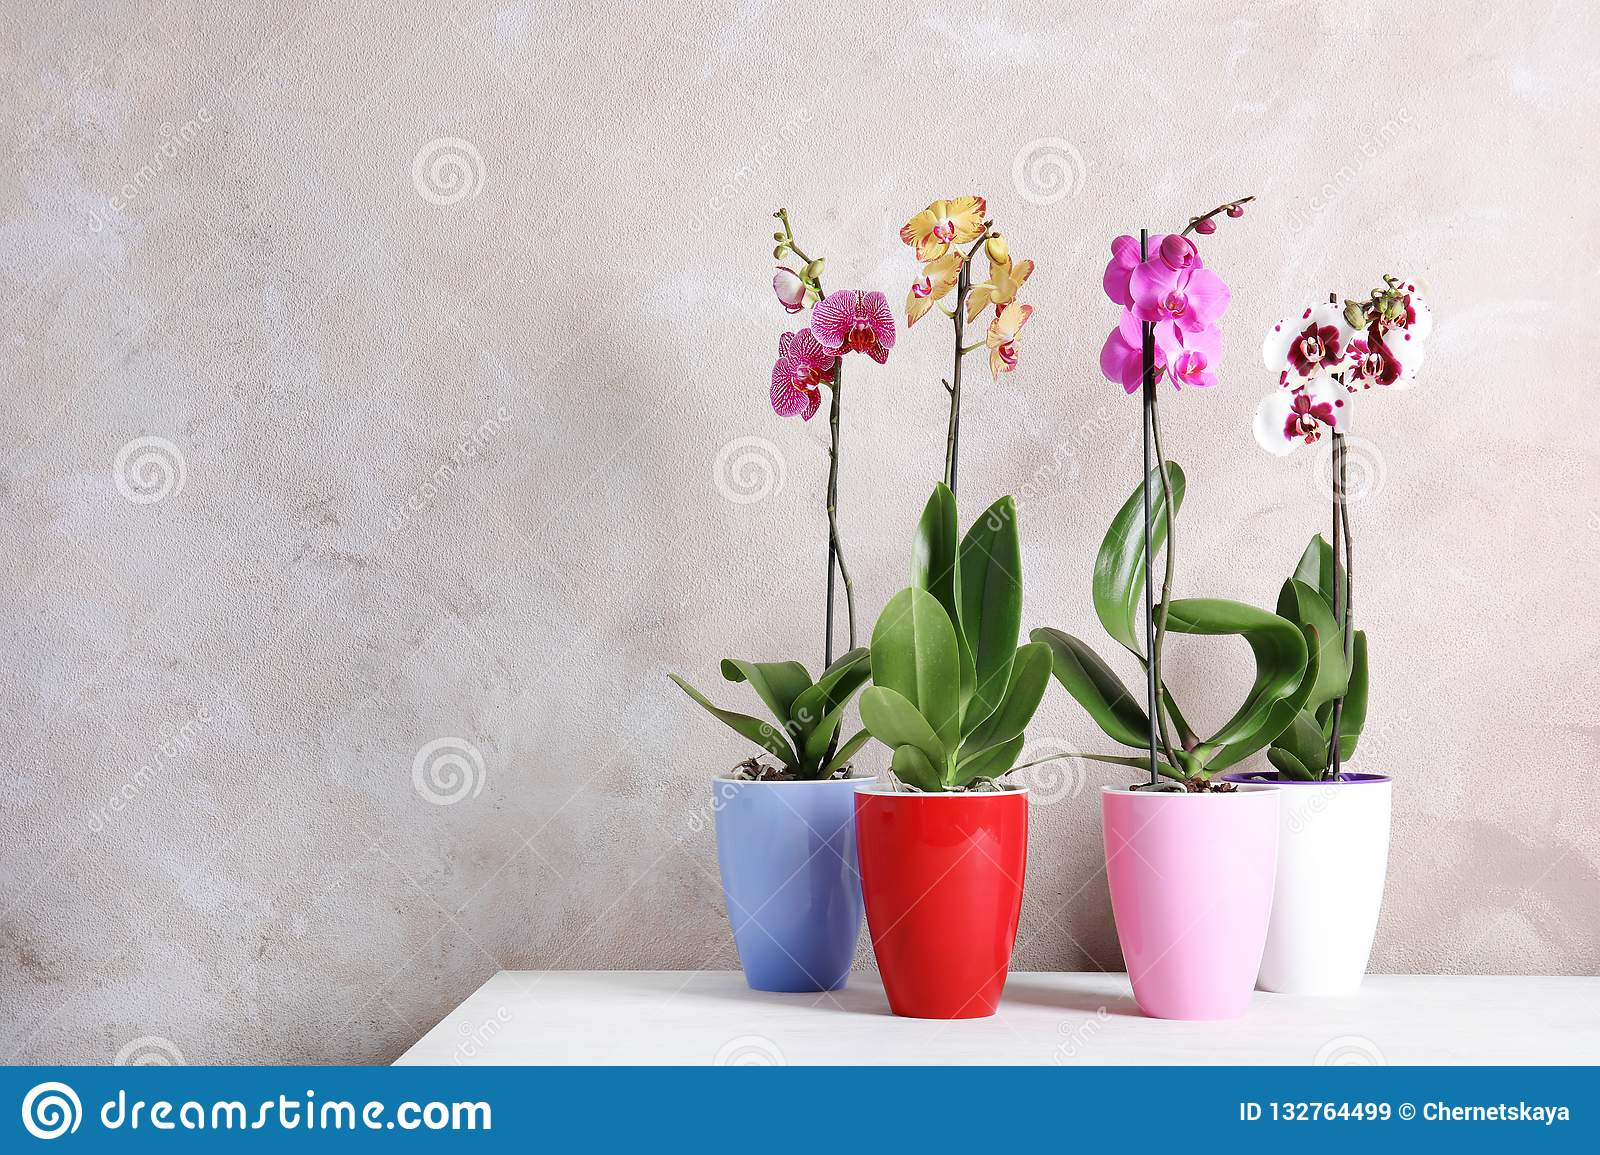 Beautiful tropical orchid flowers in pots on table near color wall.